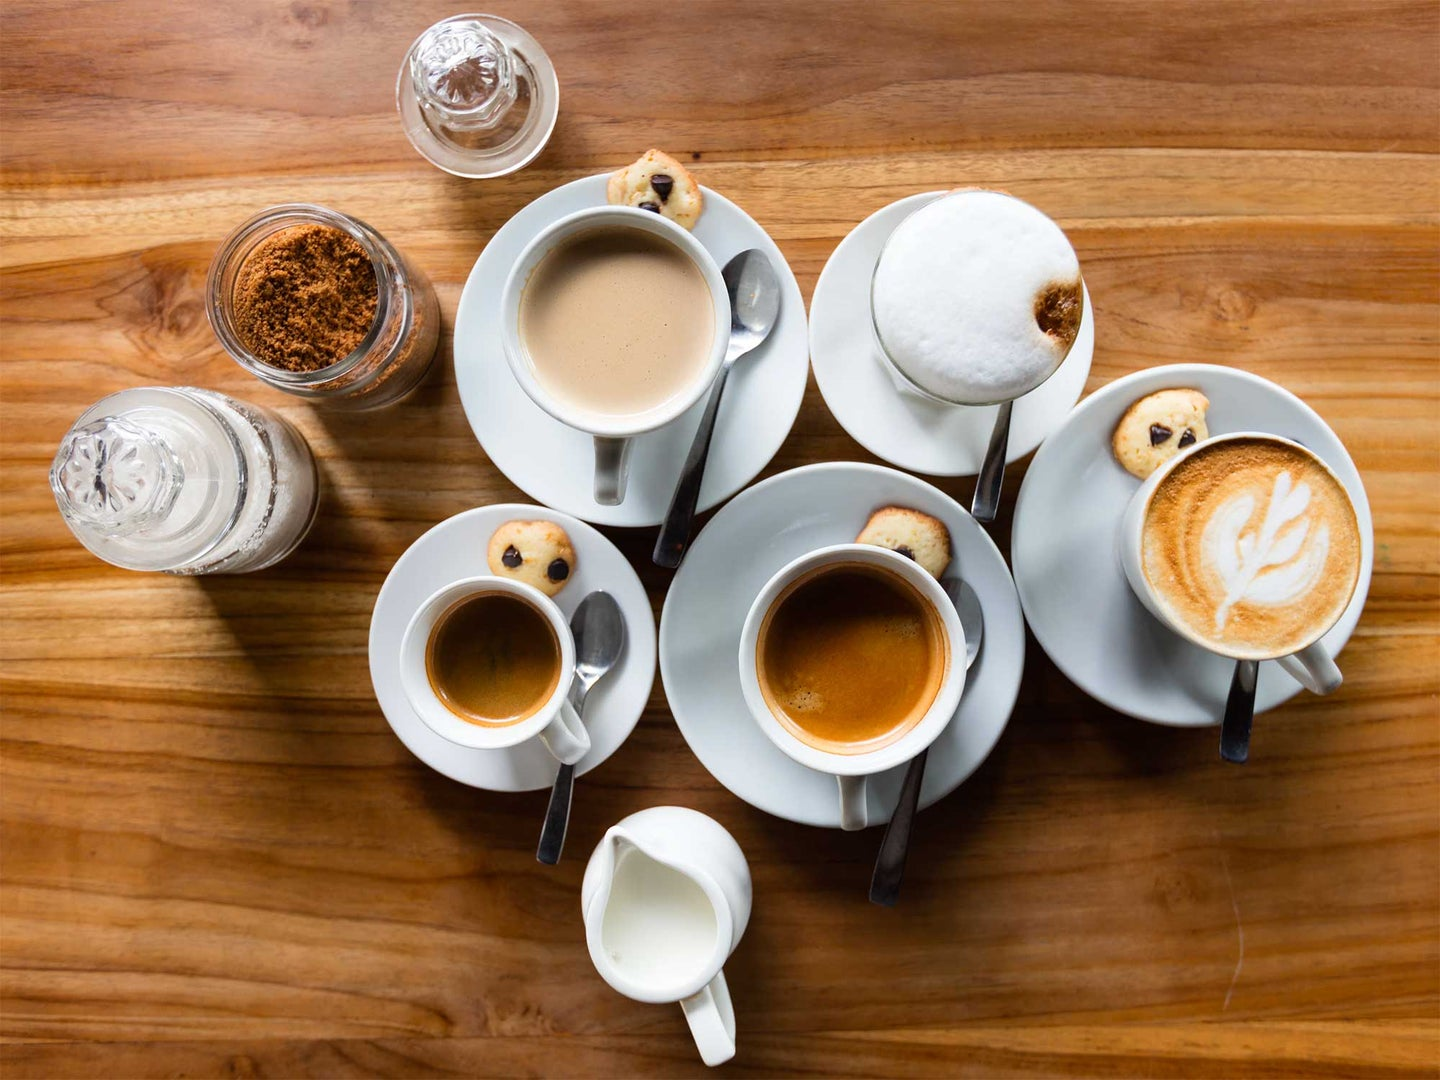 Cups of coffee on a wooden table